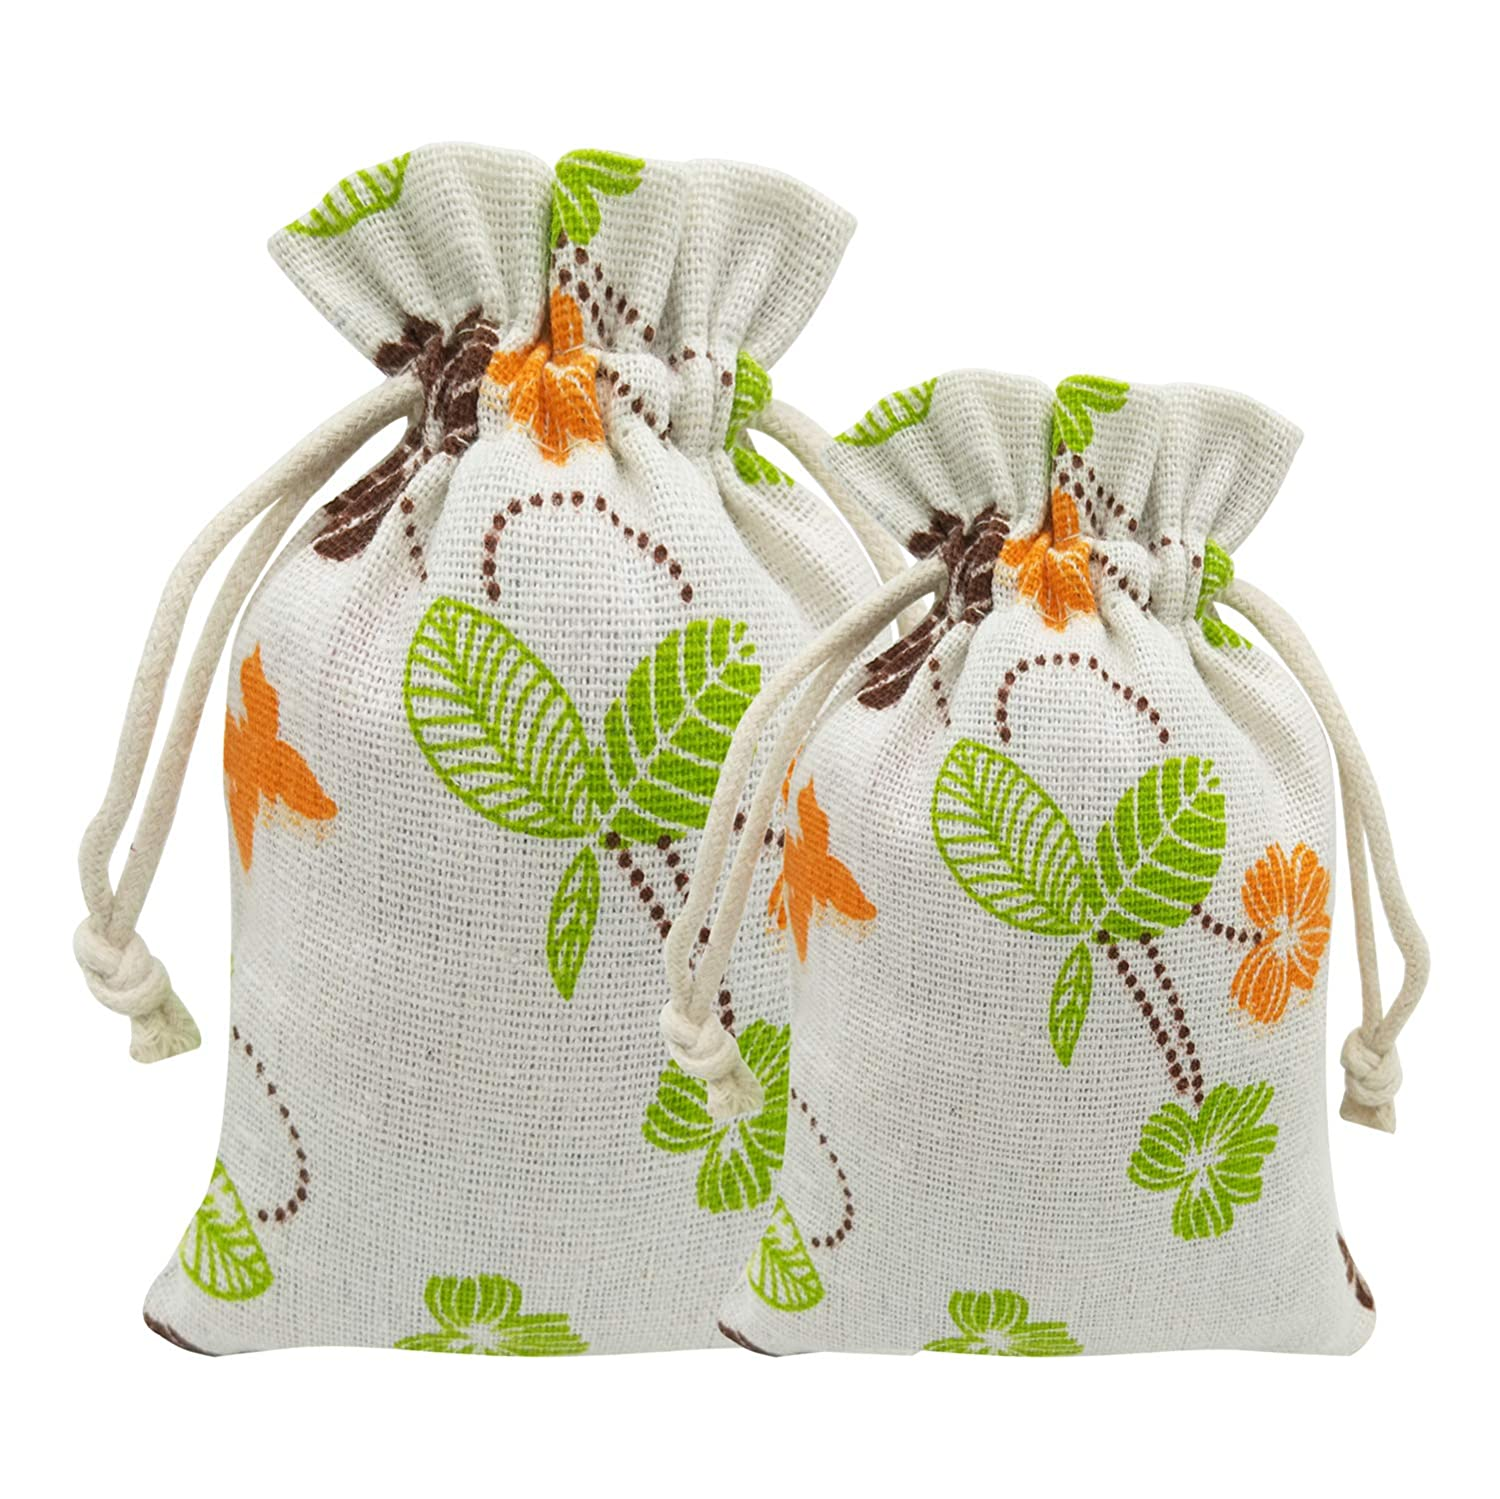 Leaves 5 X 7 Wedding Party Gift Bags Jewellery Bags 15 Pcs Burlap Bags with Drawstring